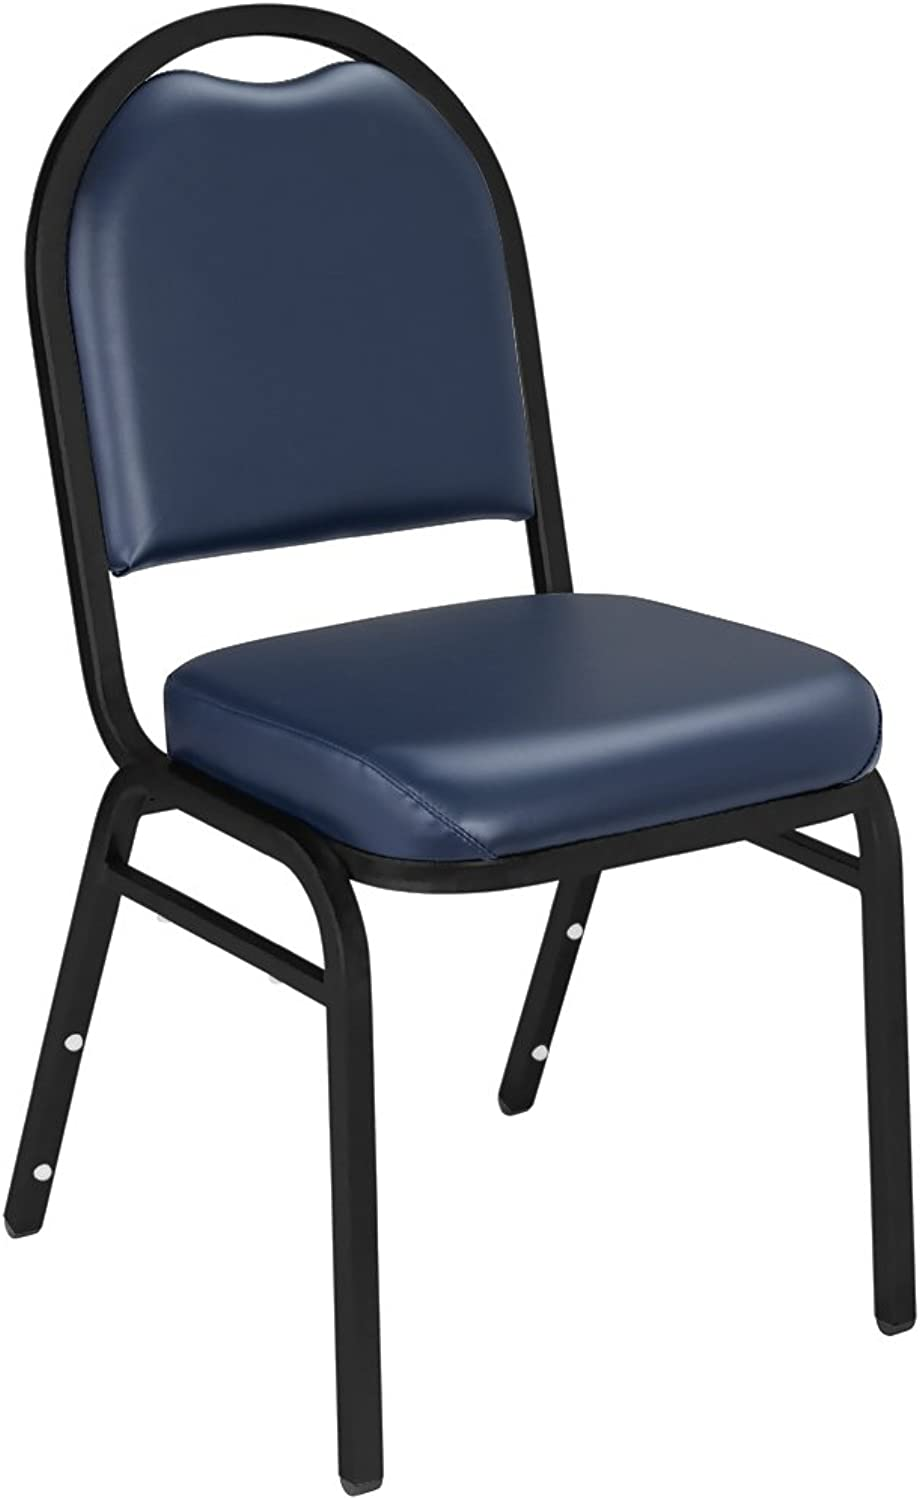 NPS 9204-BT Vinyl-upholstered Dome Back Stack Chair with Steel Black Sandtex Frame, 300-Pound Weight Capacity, 18-Inch Length x 20-Inch Width x 34-Inch Height, bluee